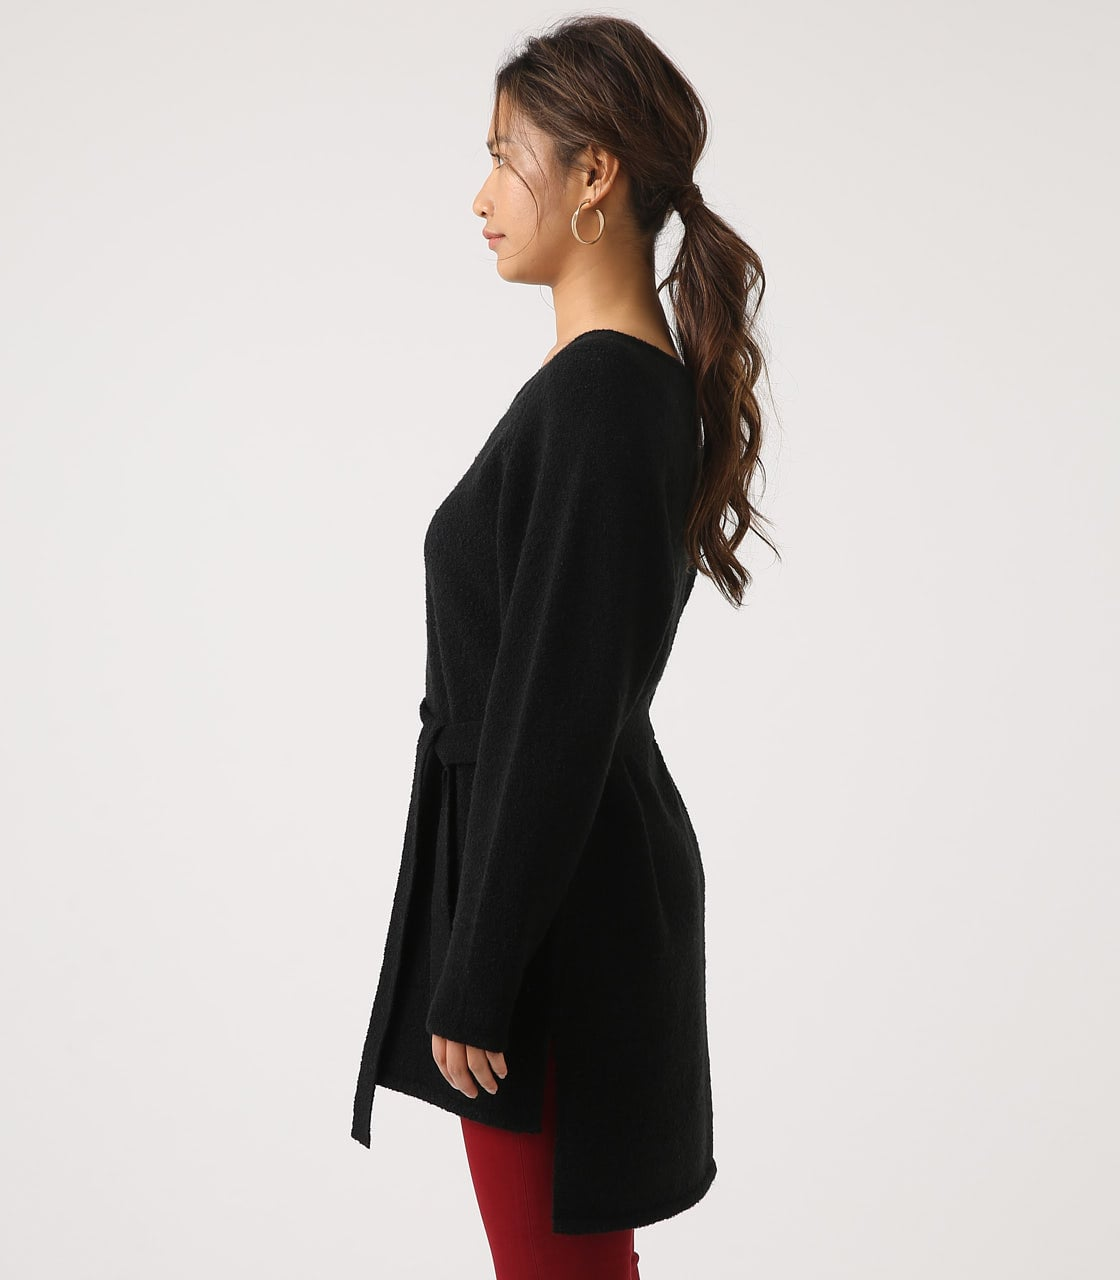 BELT SET V NECK KNIT TUNIC 詳細画像 BLK 6